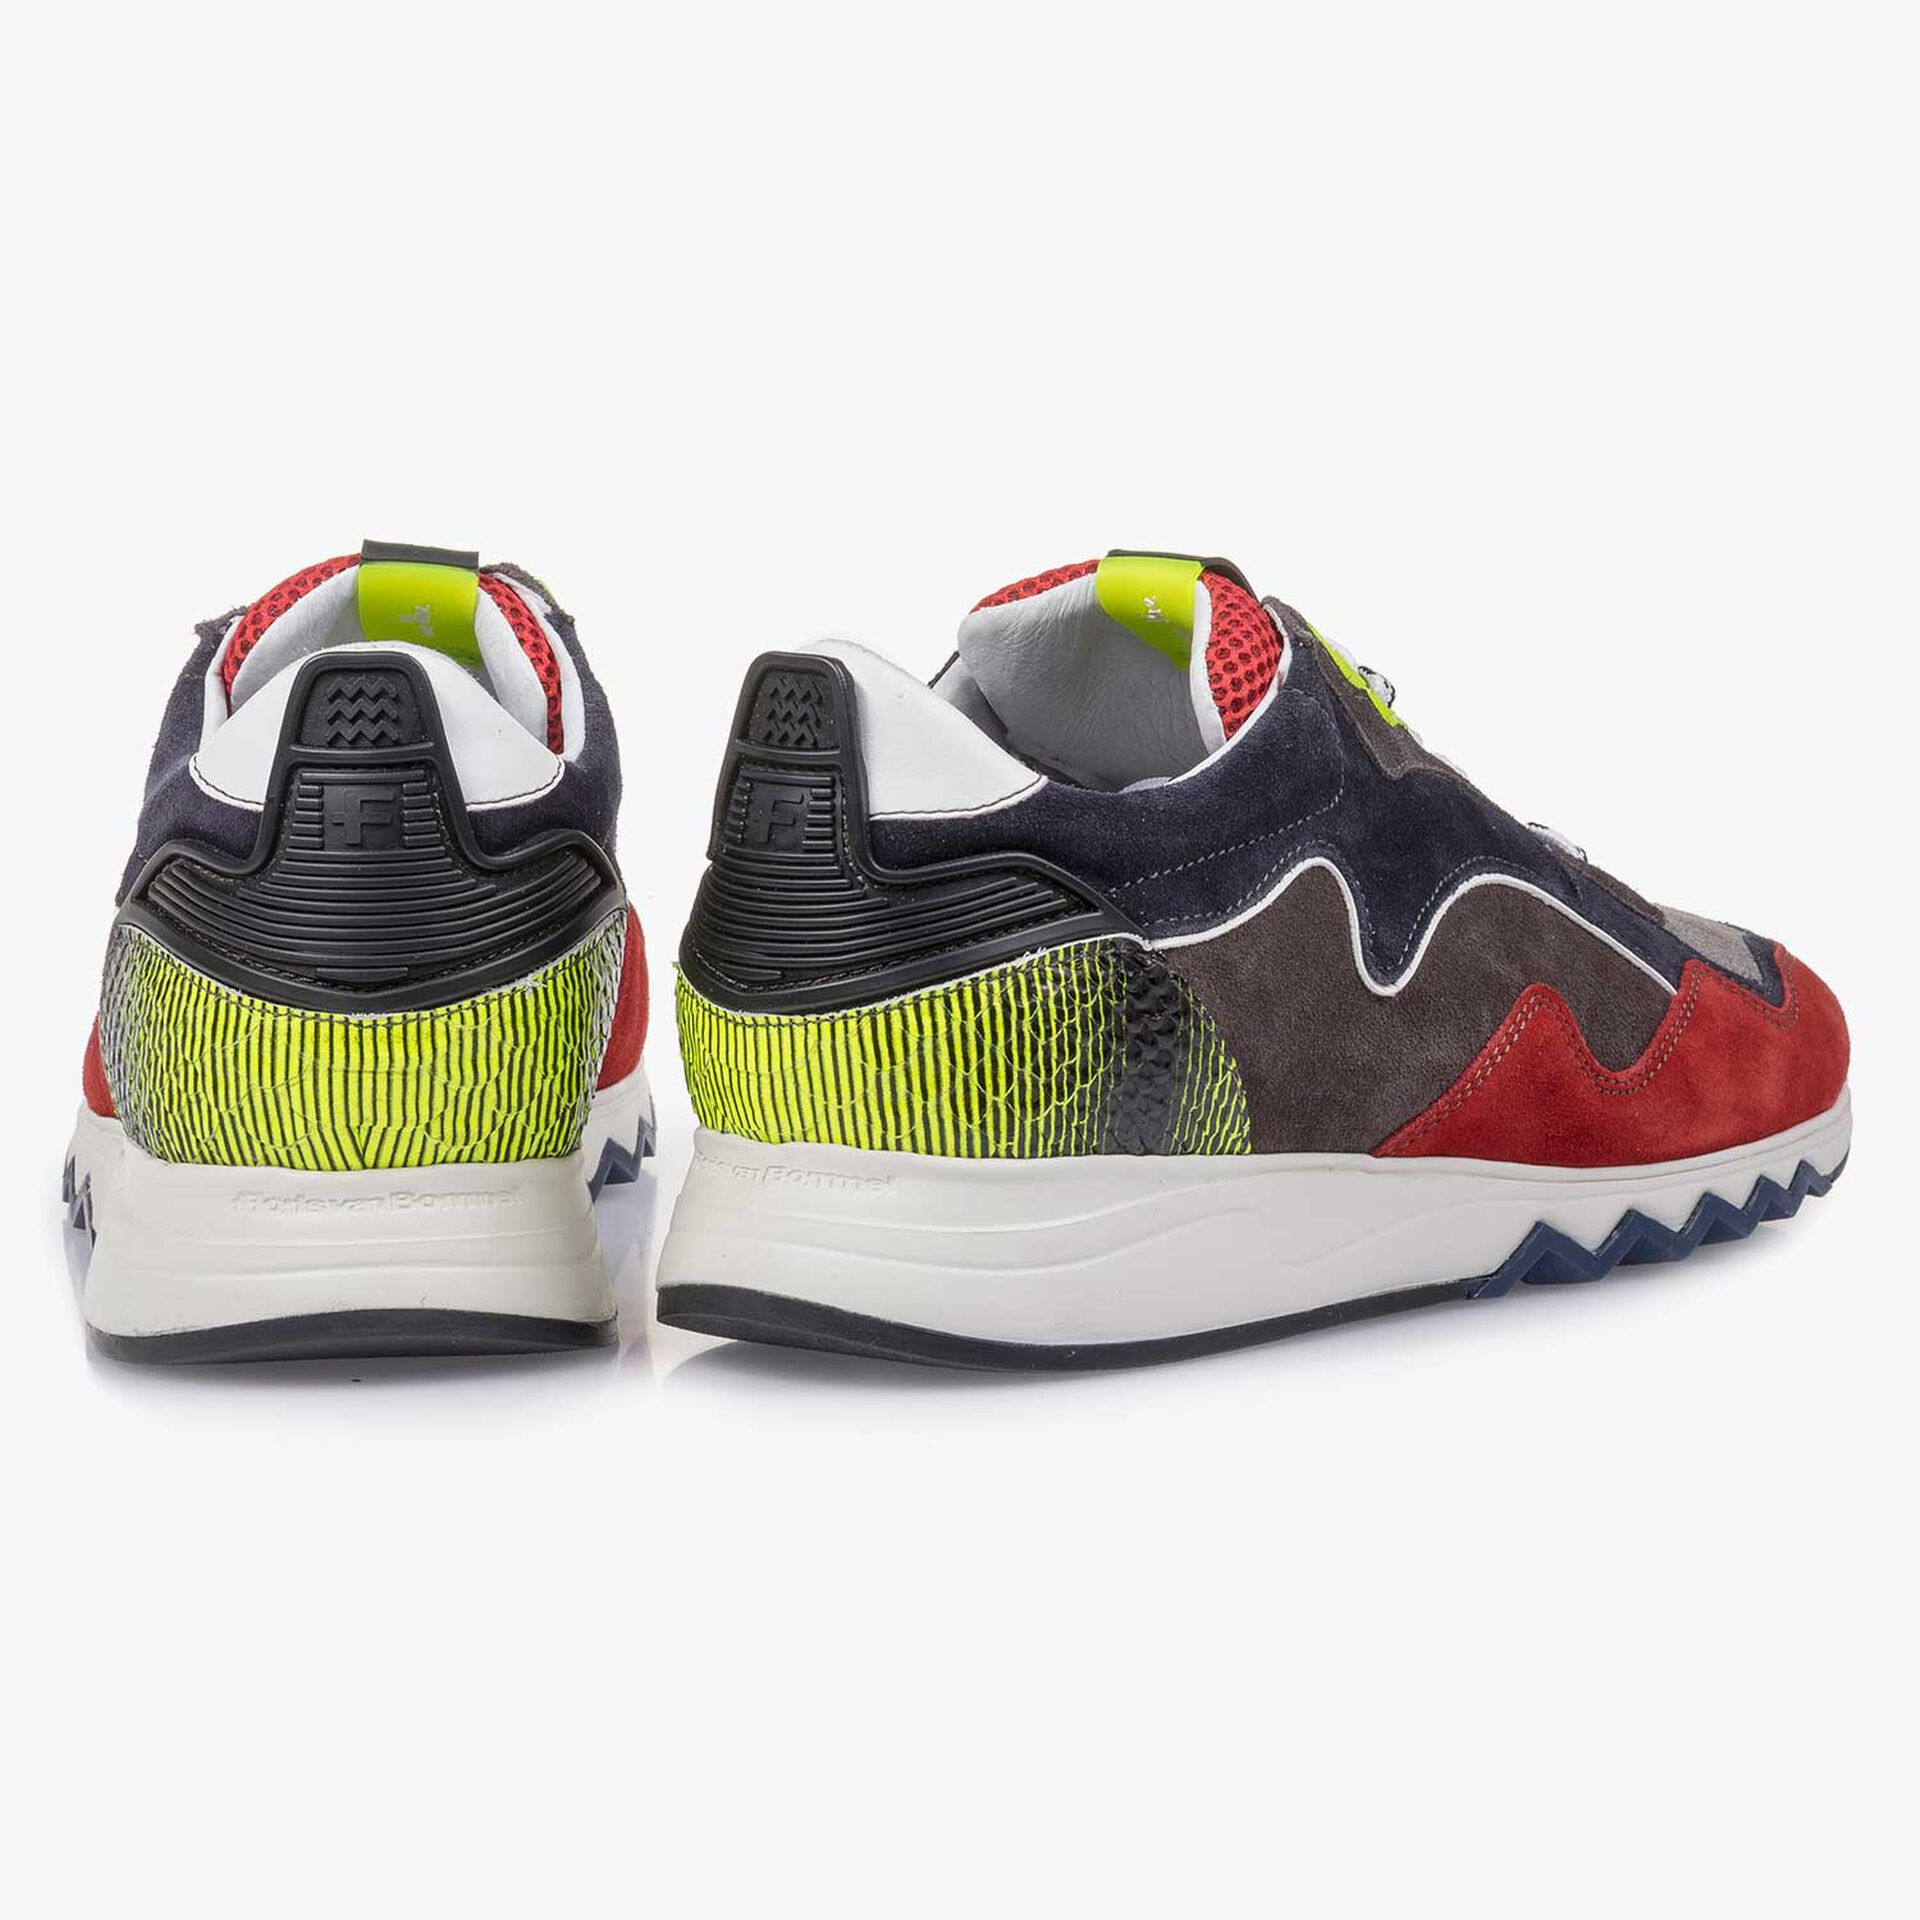 Red-yellow suede leather sneaker